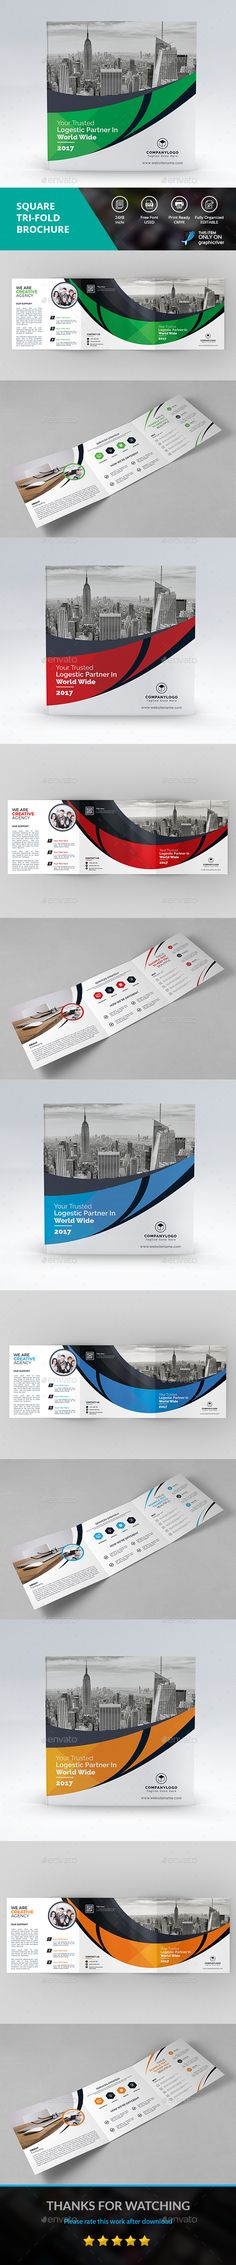 Square Tri-fold Brochure - Brochures Print Templates Download here : https://graphicriver.net/item/square-trifold-brochure/19276753?s_rank=111&ref=Al-fatih